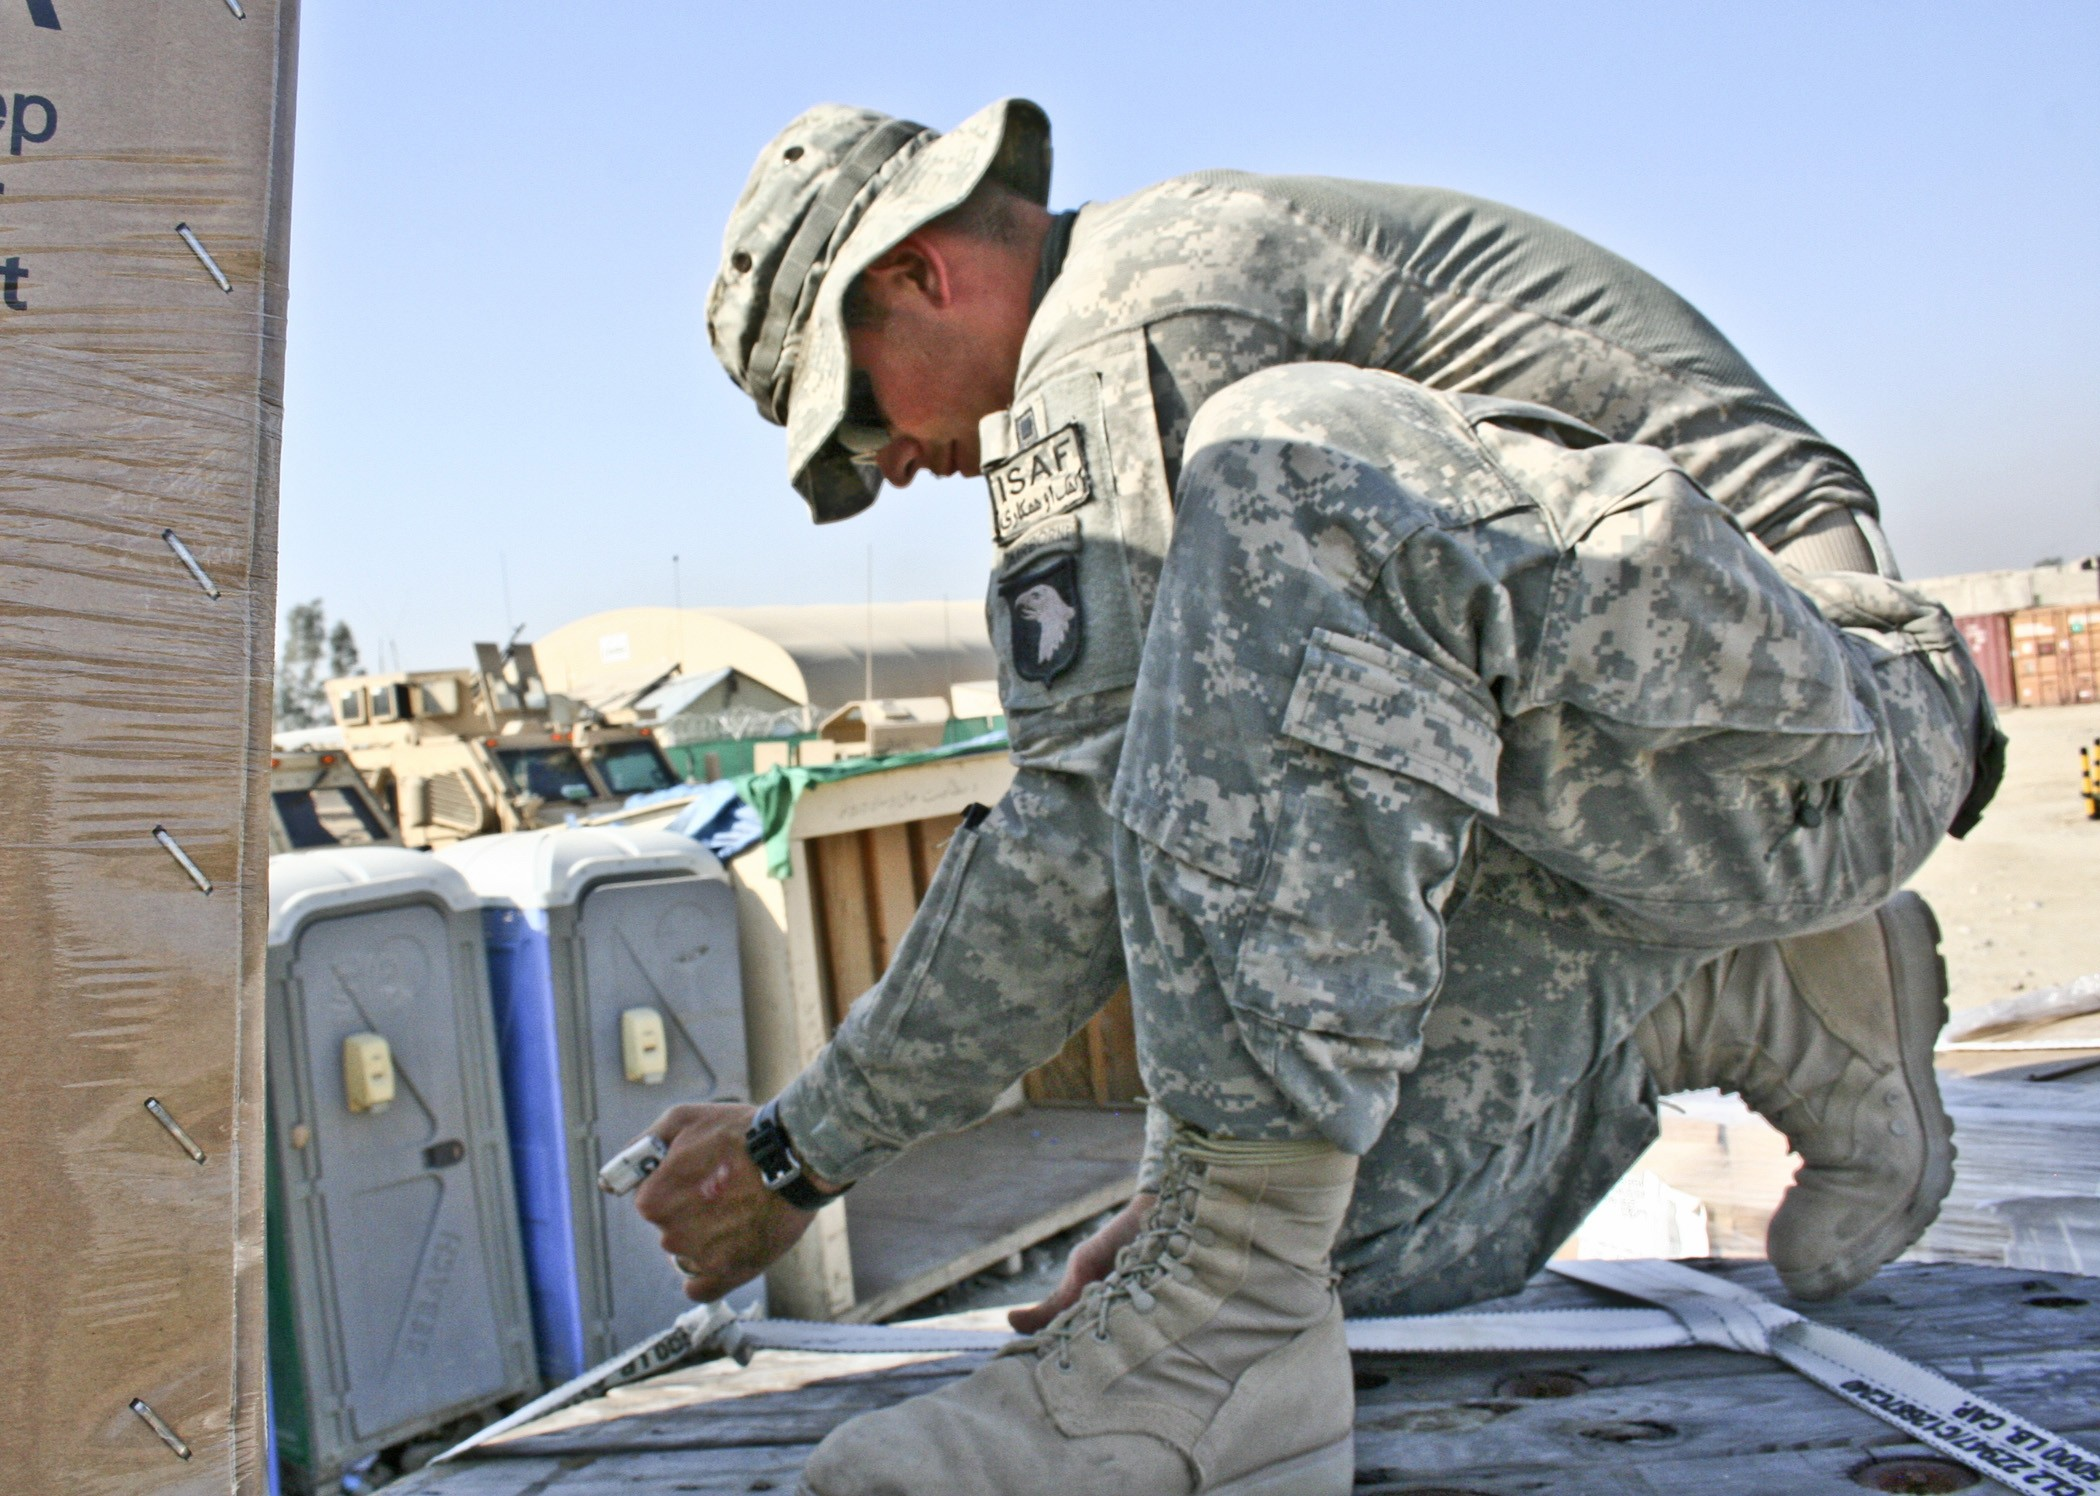 A day in the life of an Army truck driver in Afghanistan